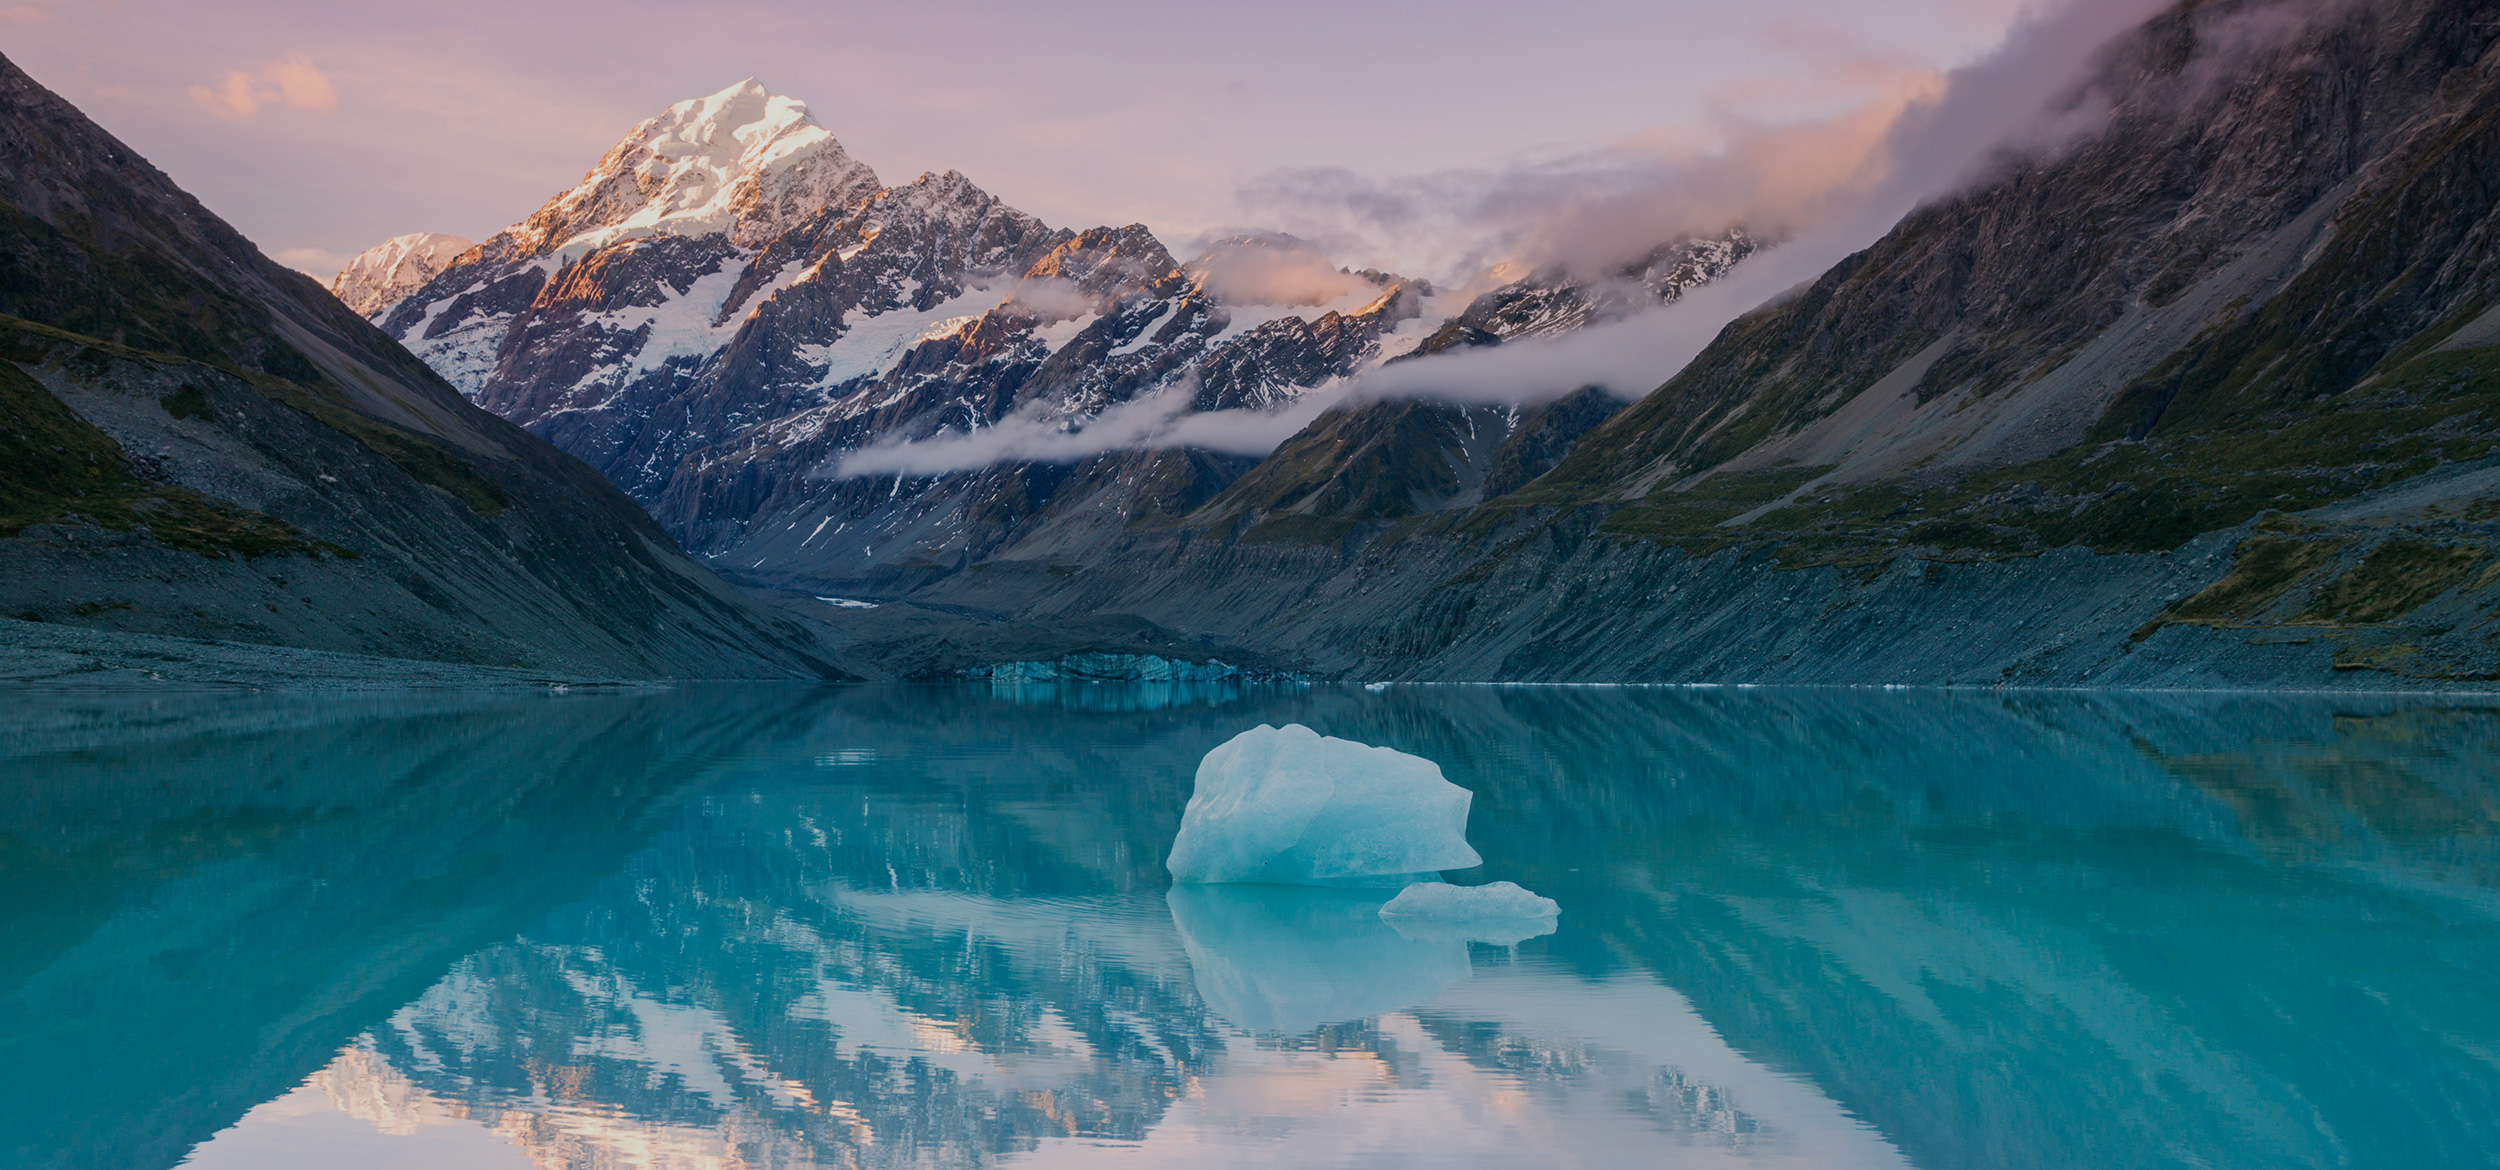 At sunset, the snowcapped peak of Mount Cook reflects in a still lake in a national park of New Zealand's South Island.